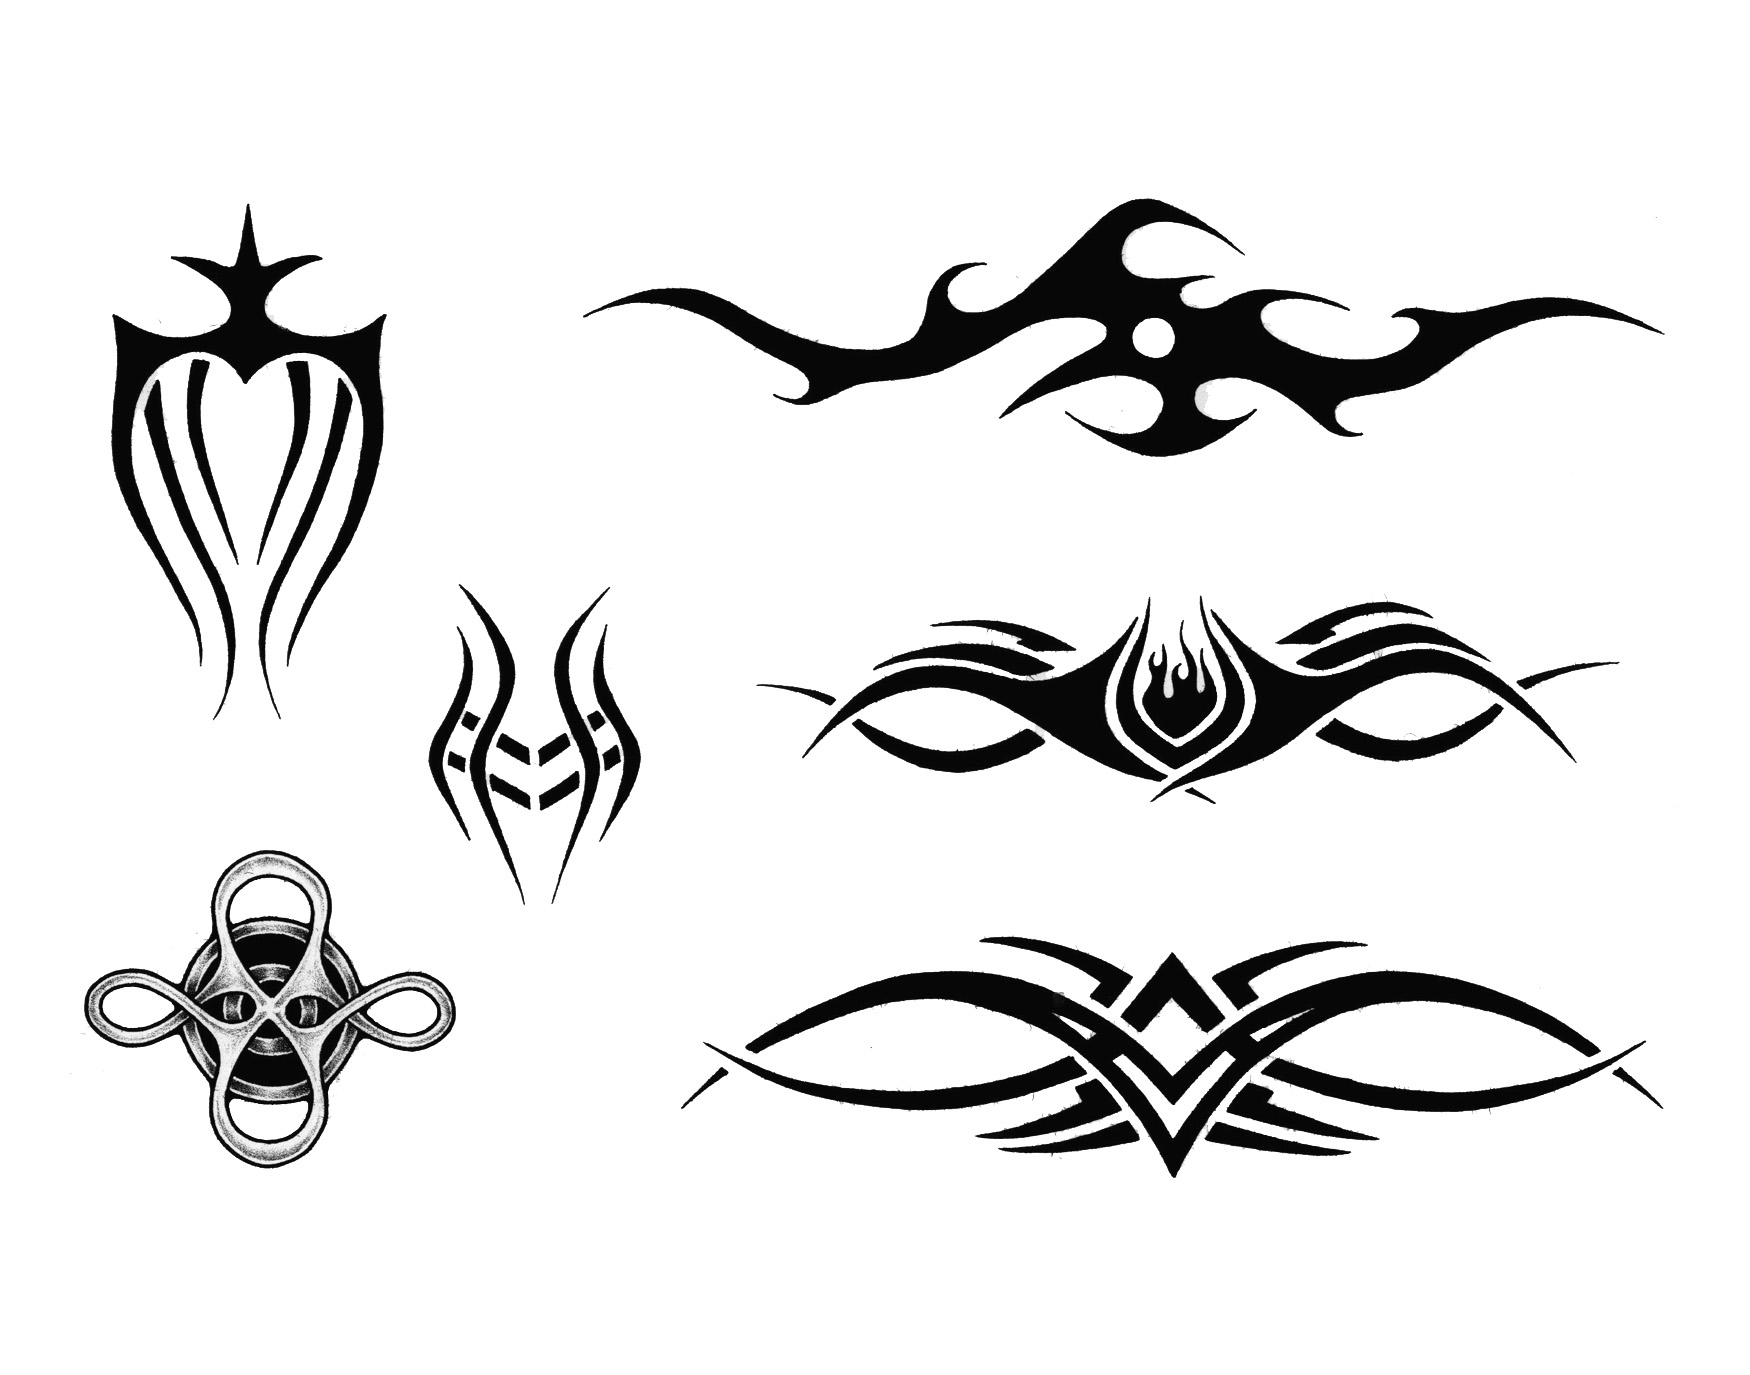 small tattoo designs few tattoomagz - Small Designs